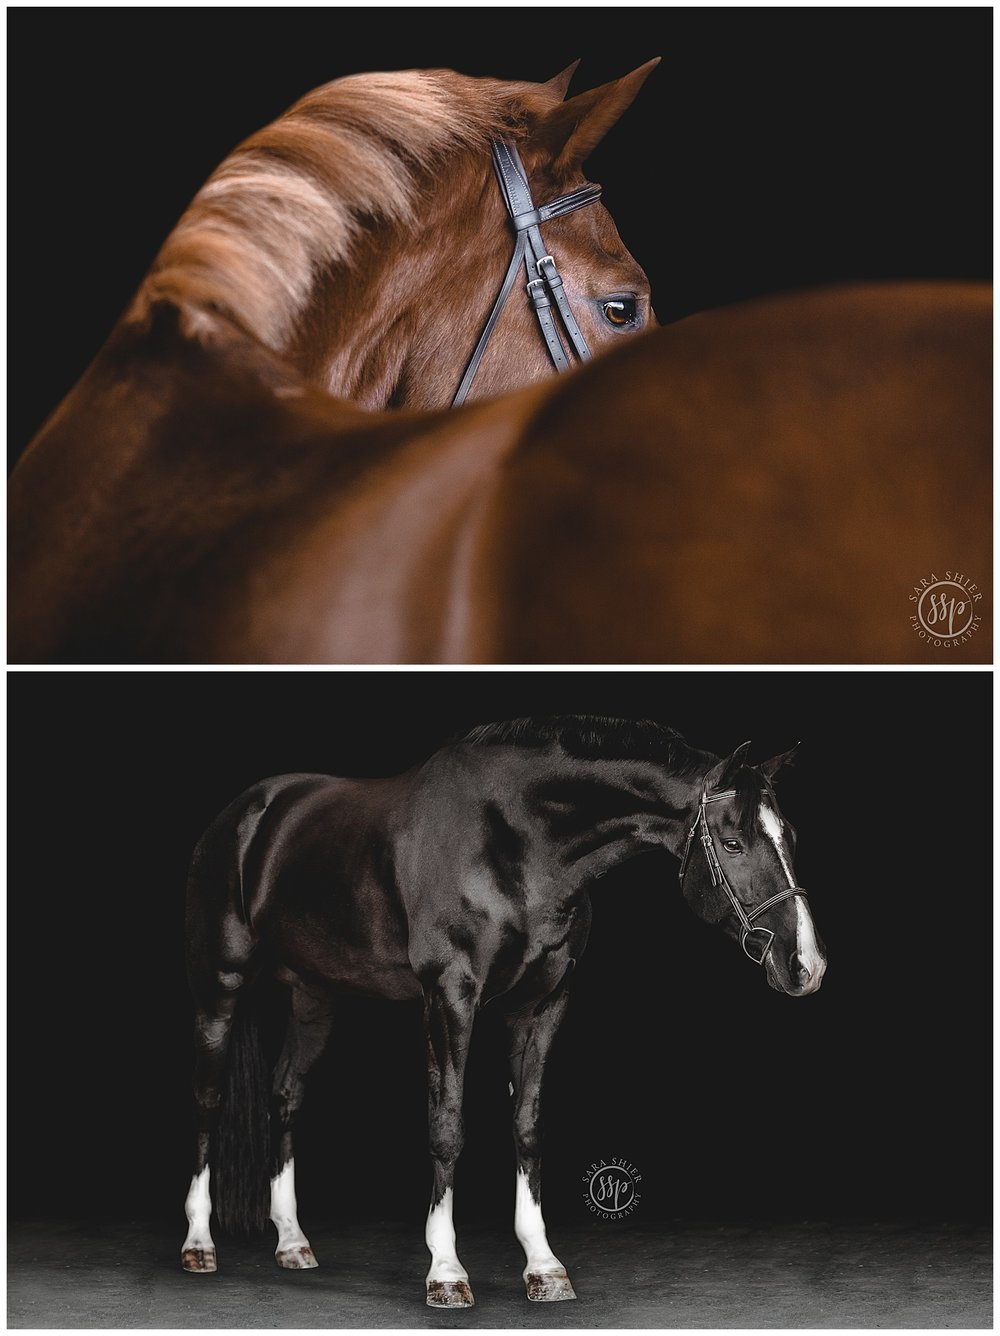 Black Background Horse Rider Equine Photographer Southern California Sara Shier Photography SoCal Equestrian Cowgirl_0220.jpg